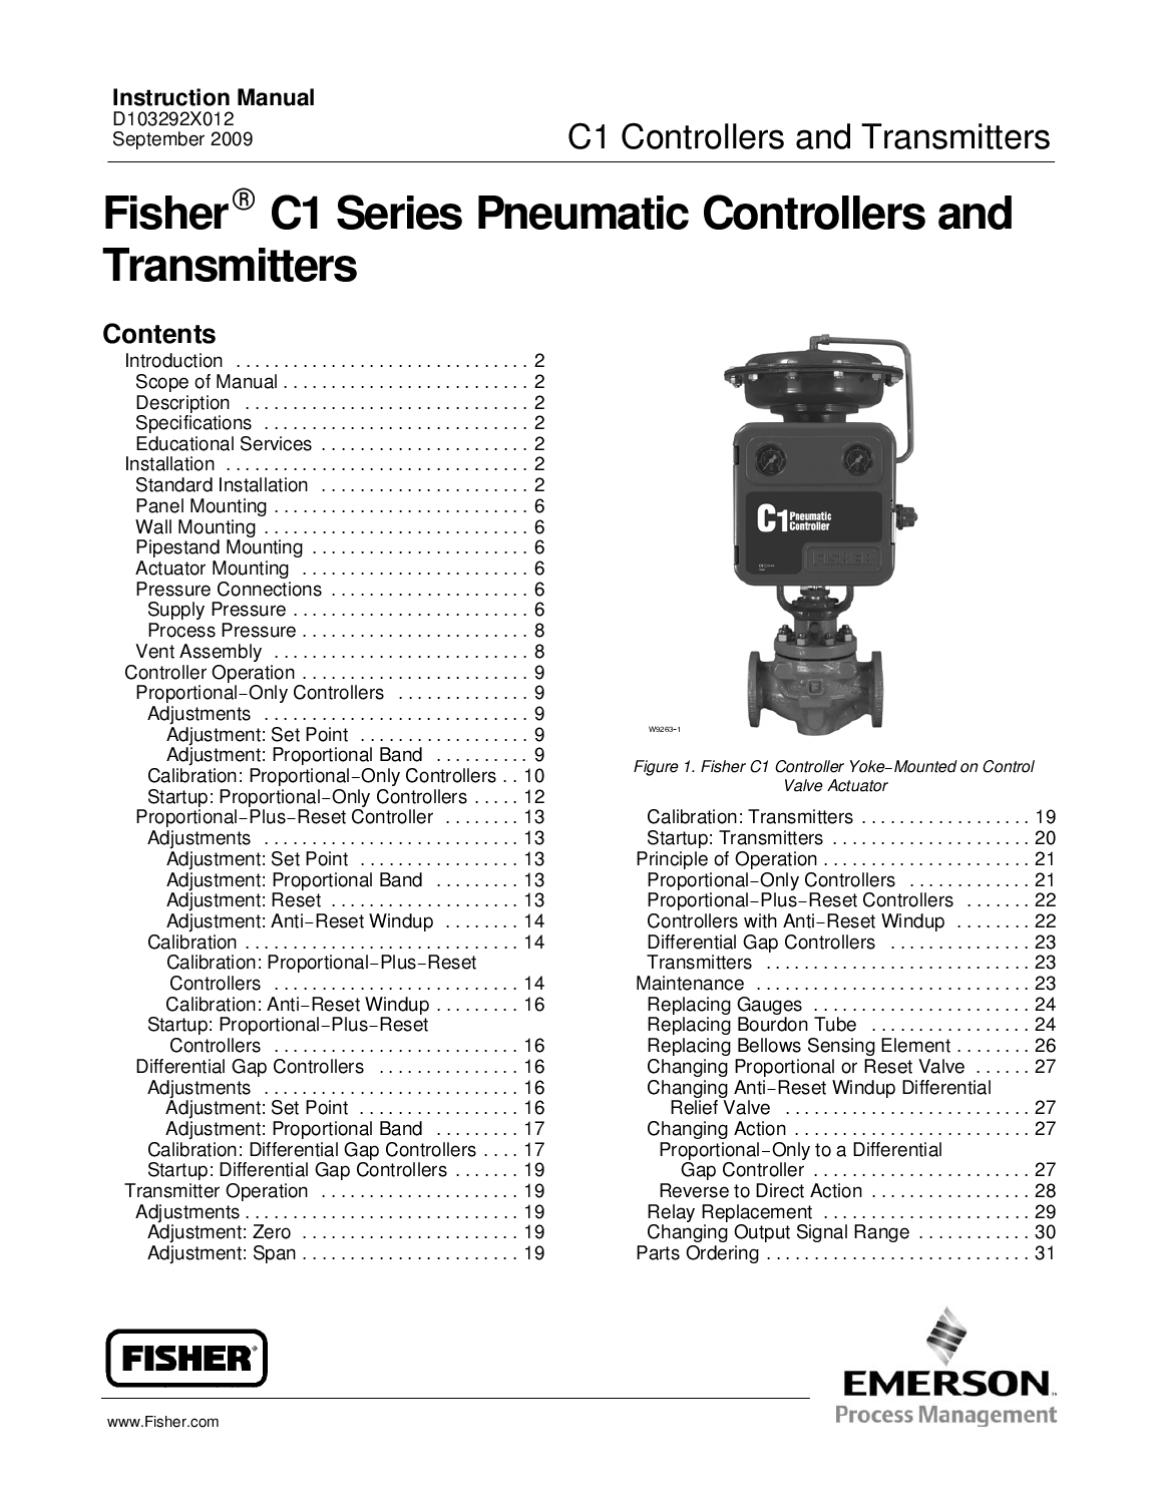 C1 Instruction Manual by RMC Process Controls & Filtration